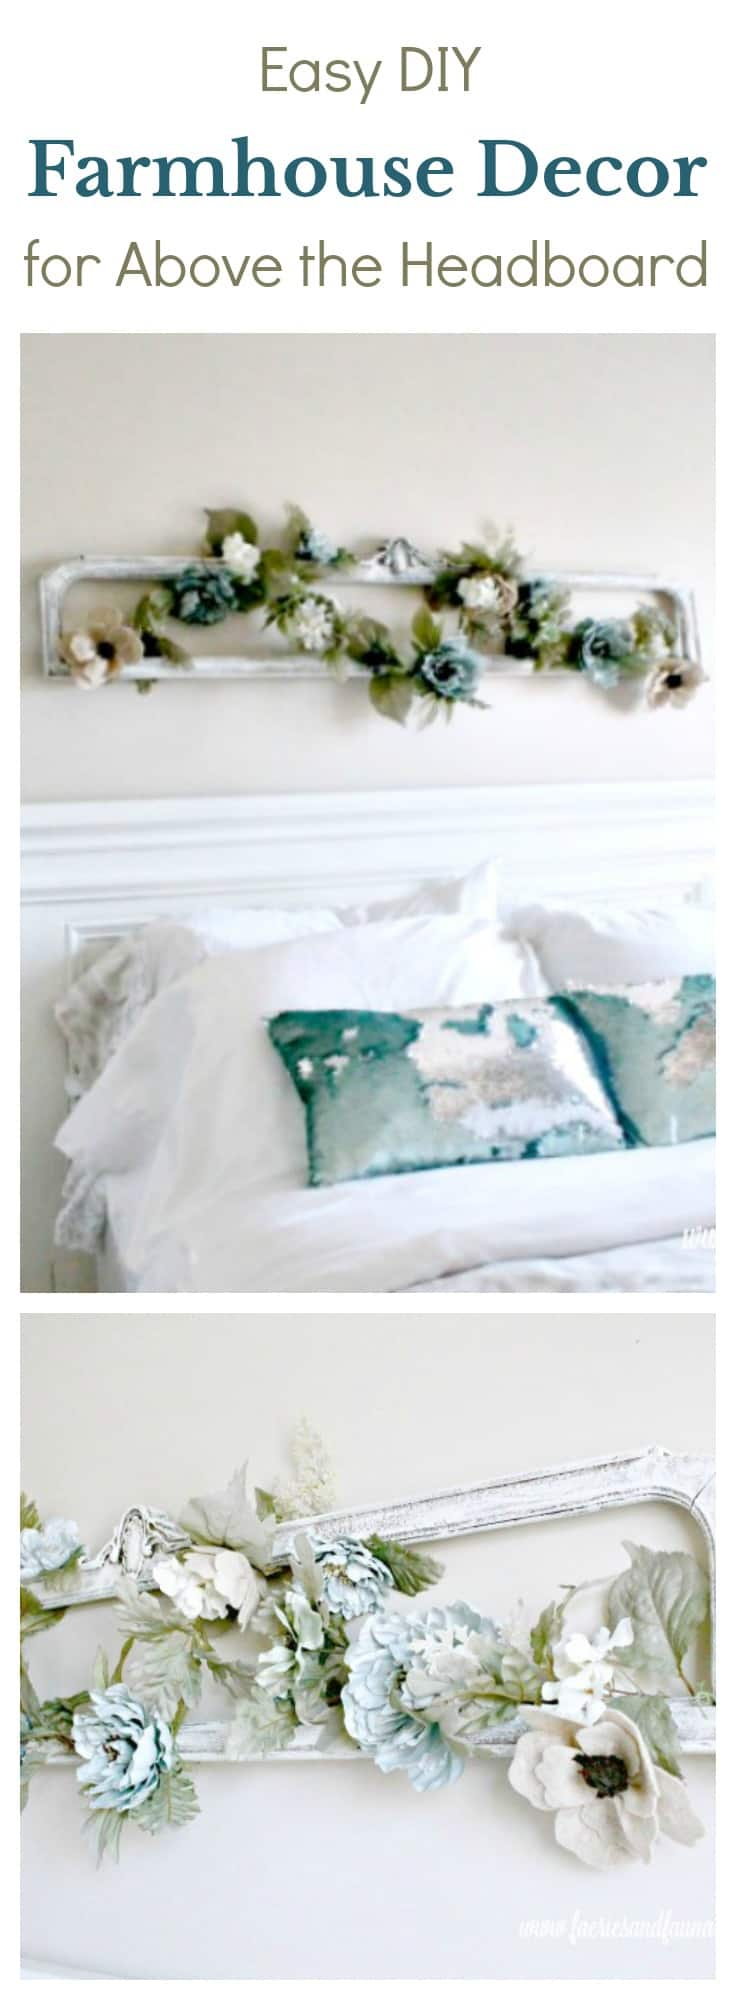 DIY Farmhouse style wall art for above the headboard in a master or guest bedroom